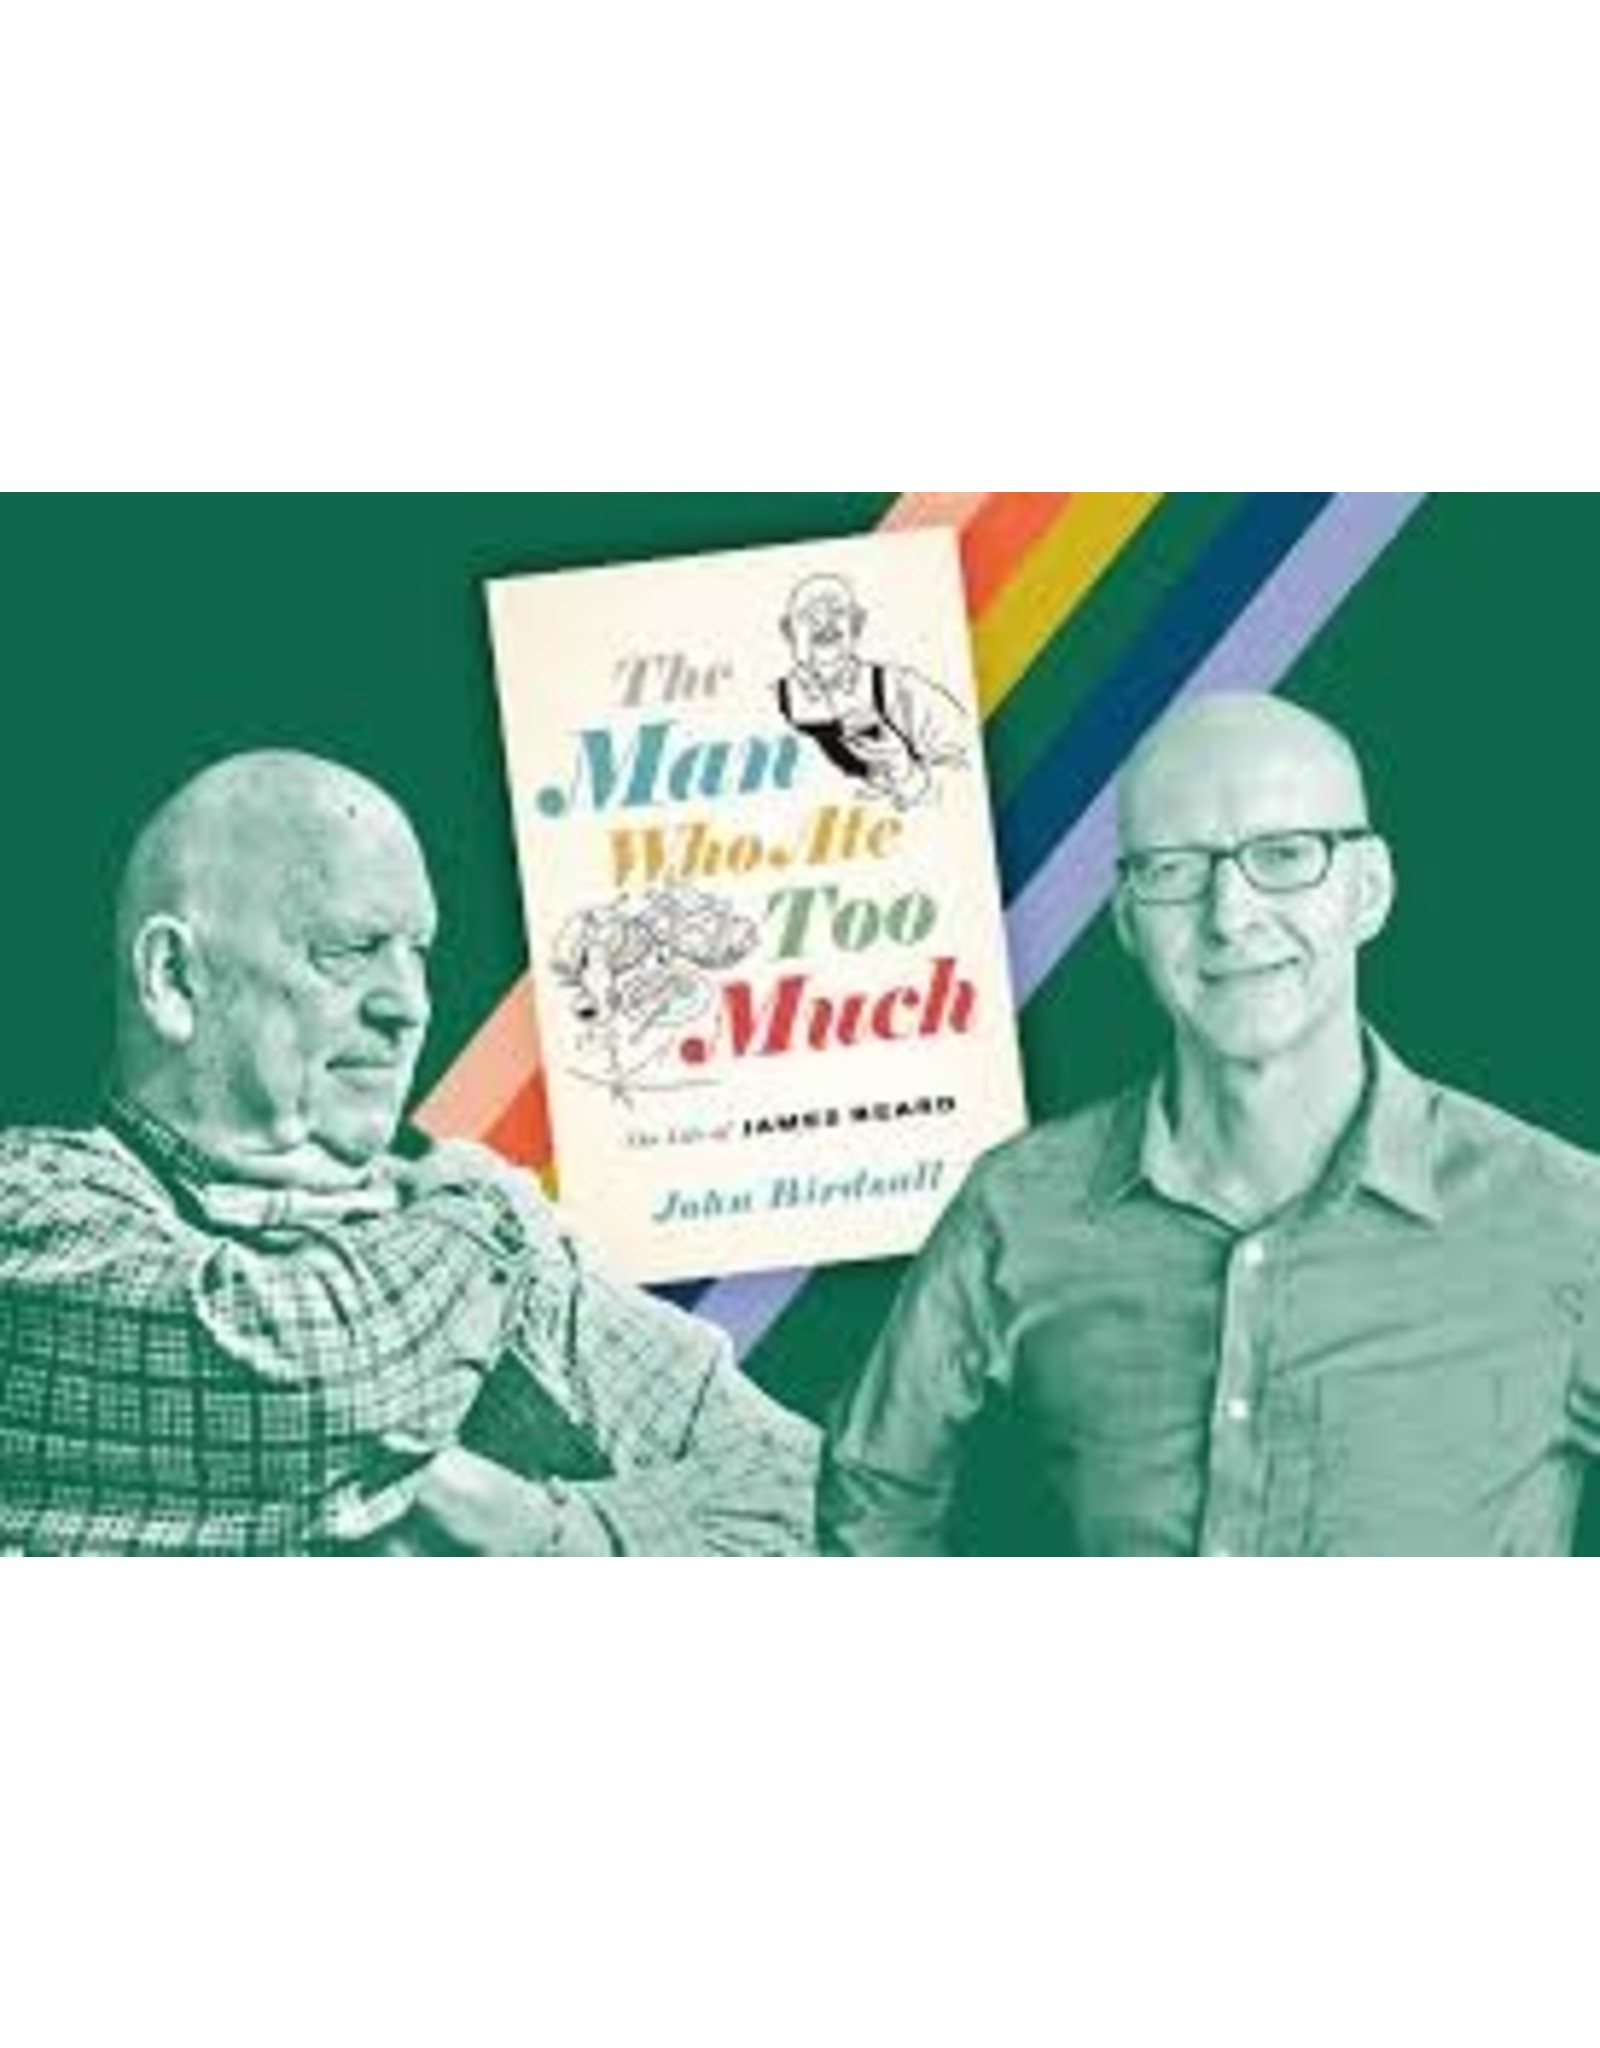 Books The Man Who Ate Too Much: The Life of James Beard by John Birdsall (Holiday Catalog)